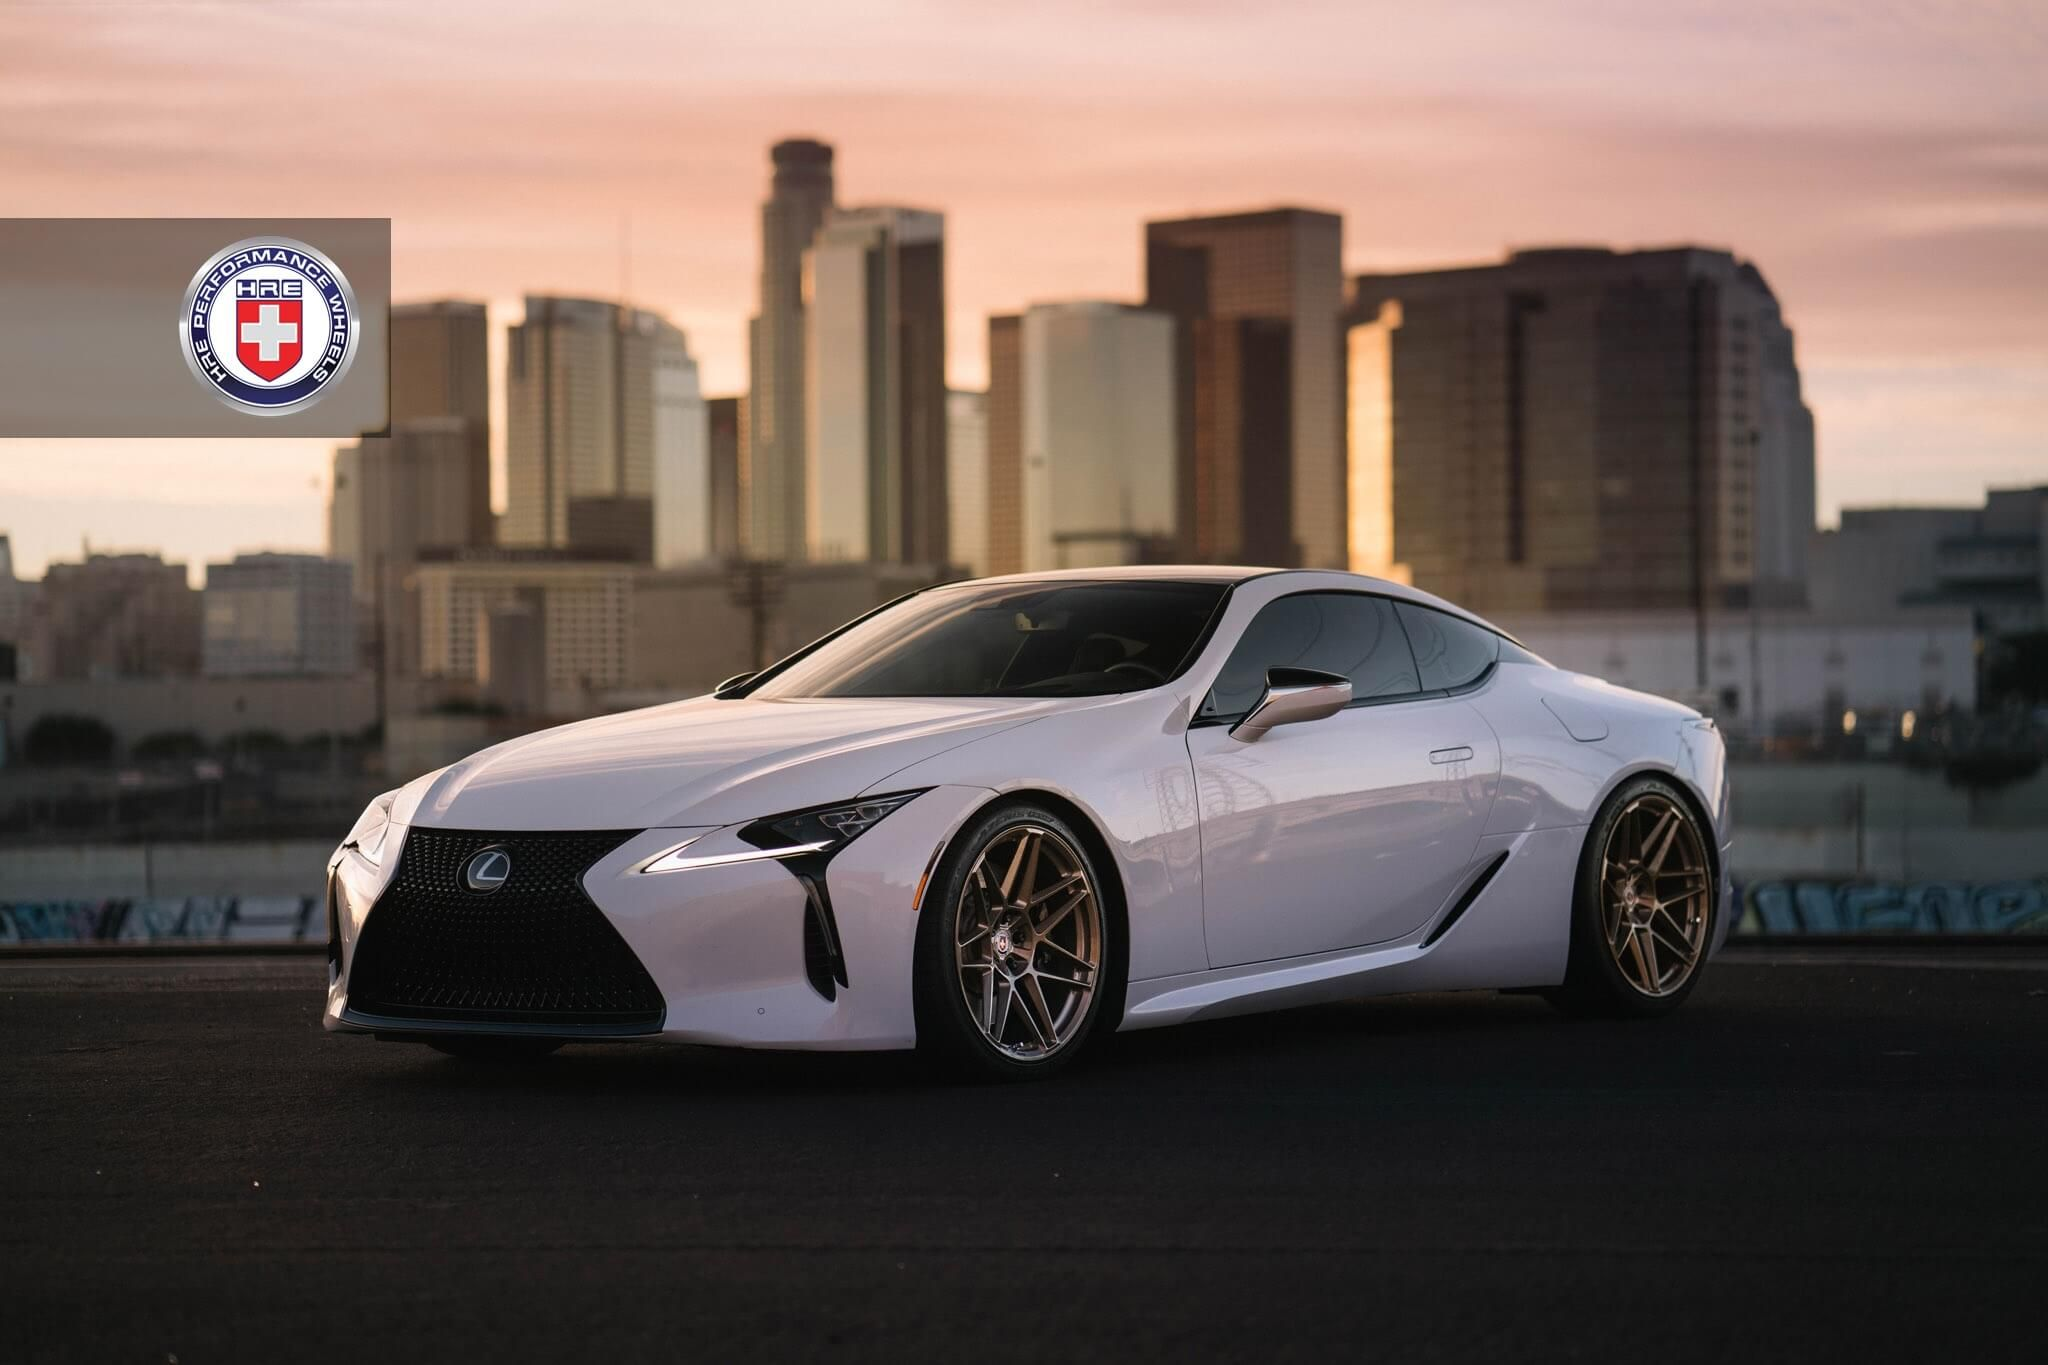 Lexus Lc 500 With Hre Rs200m In Stone Champagne Lexus Lc Lexus Discount Tires